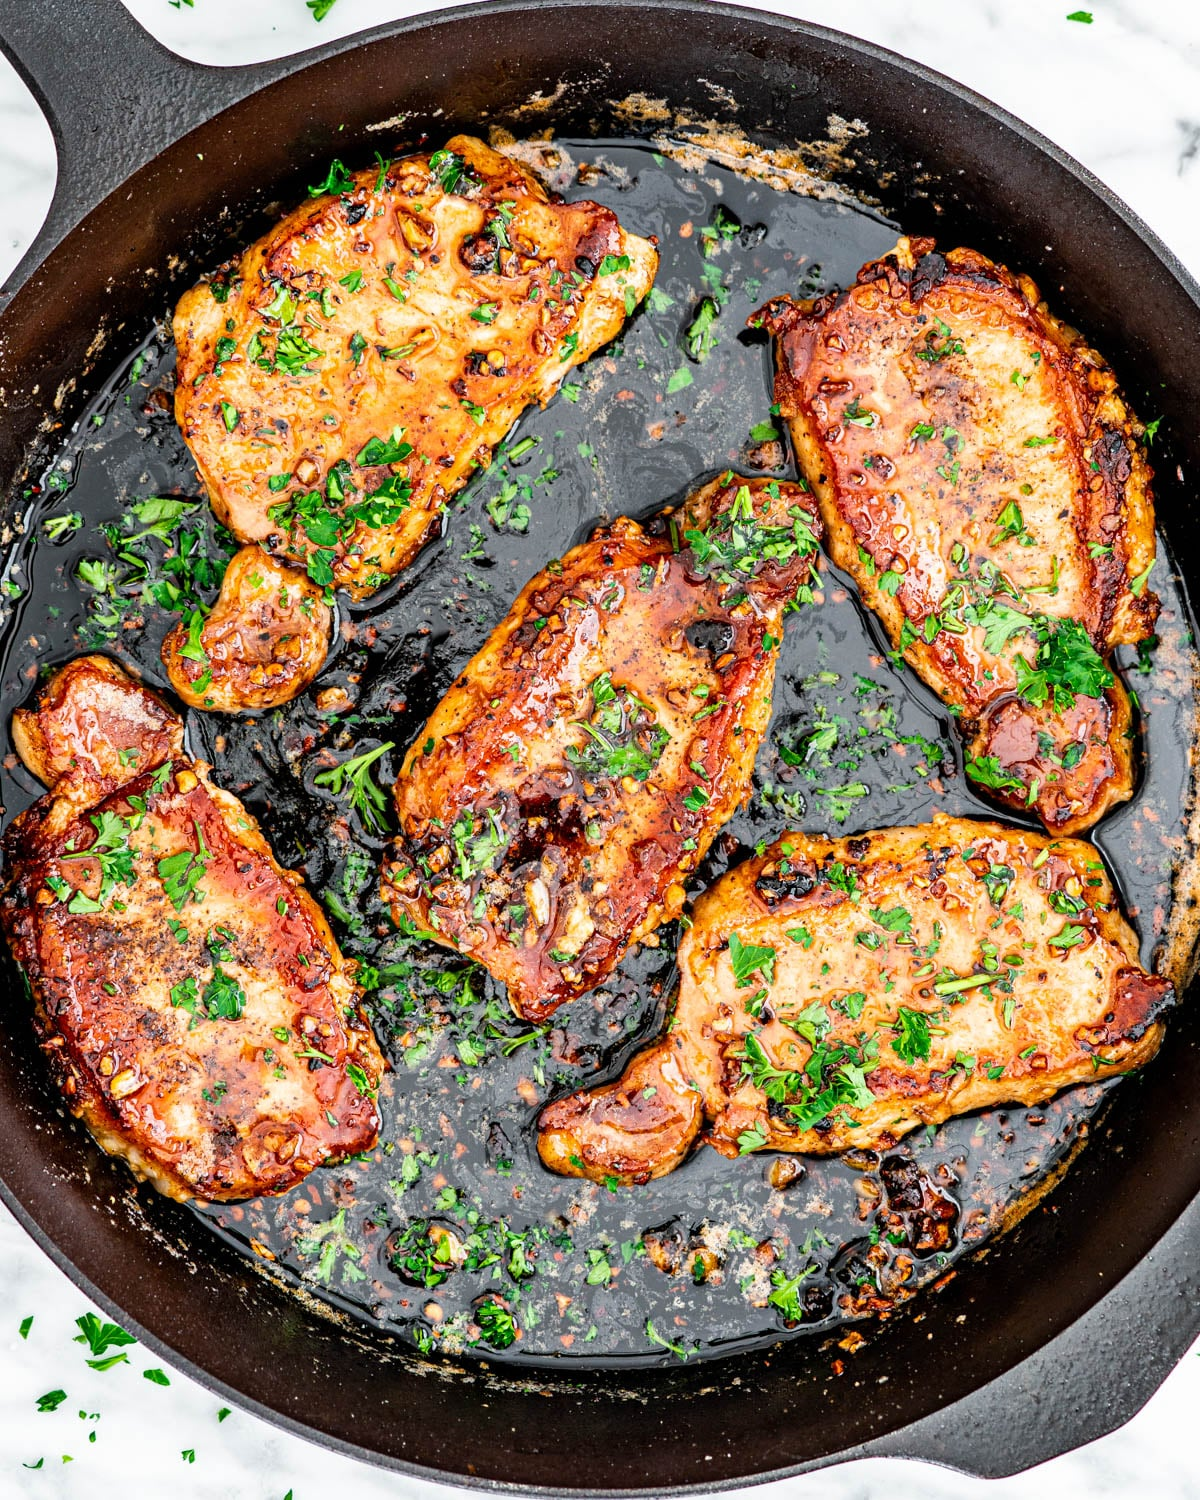 Honey Garlic Pork Chops in a skillet